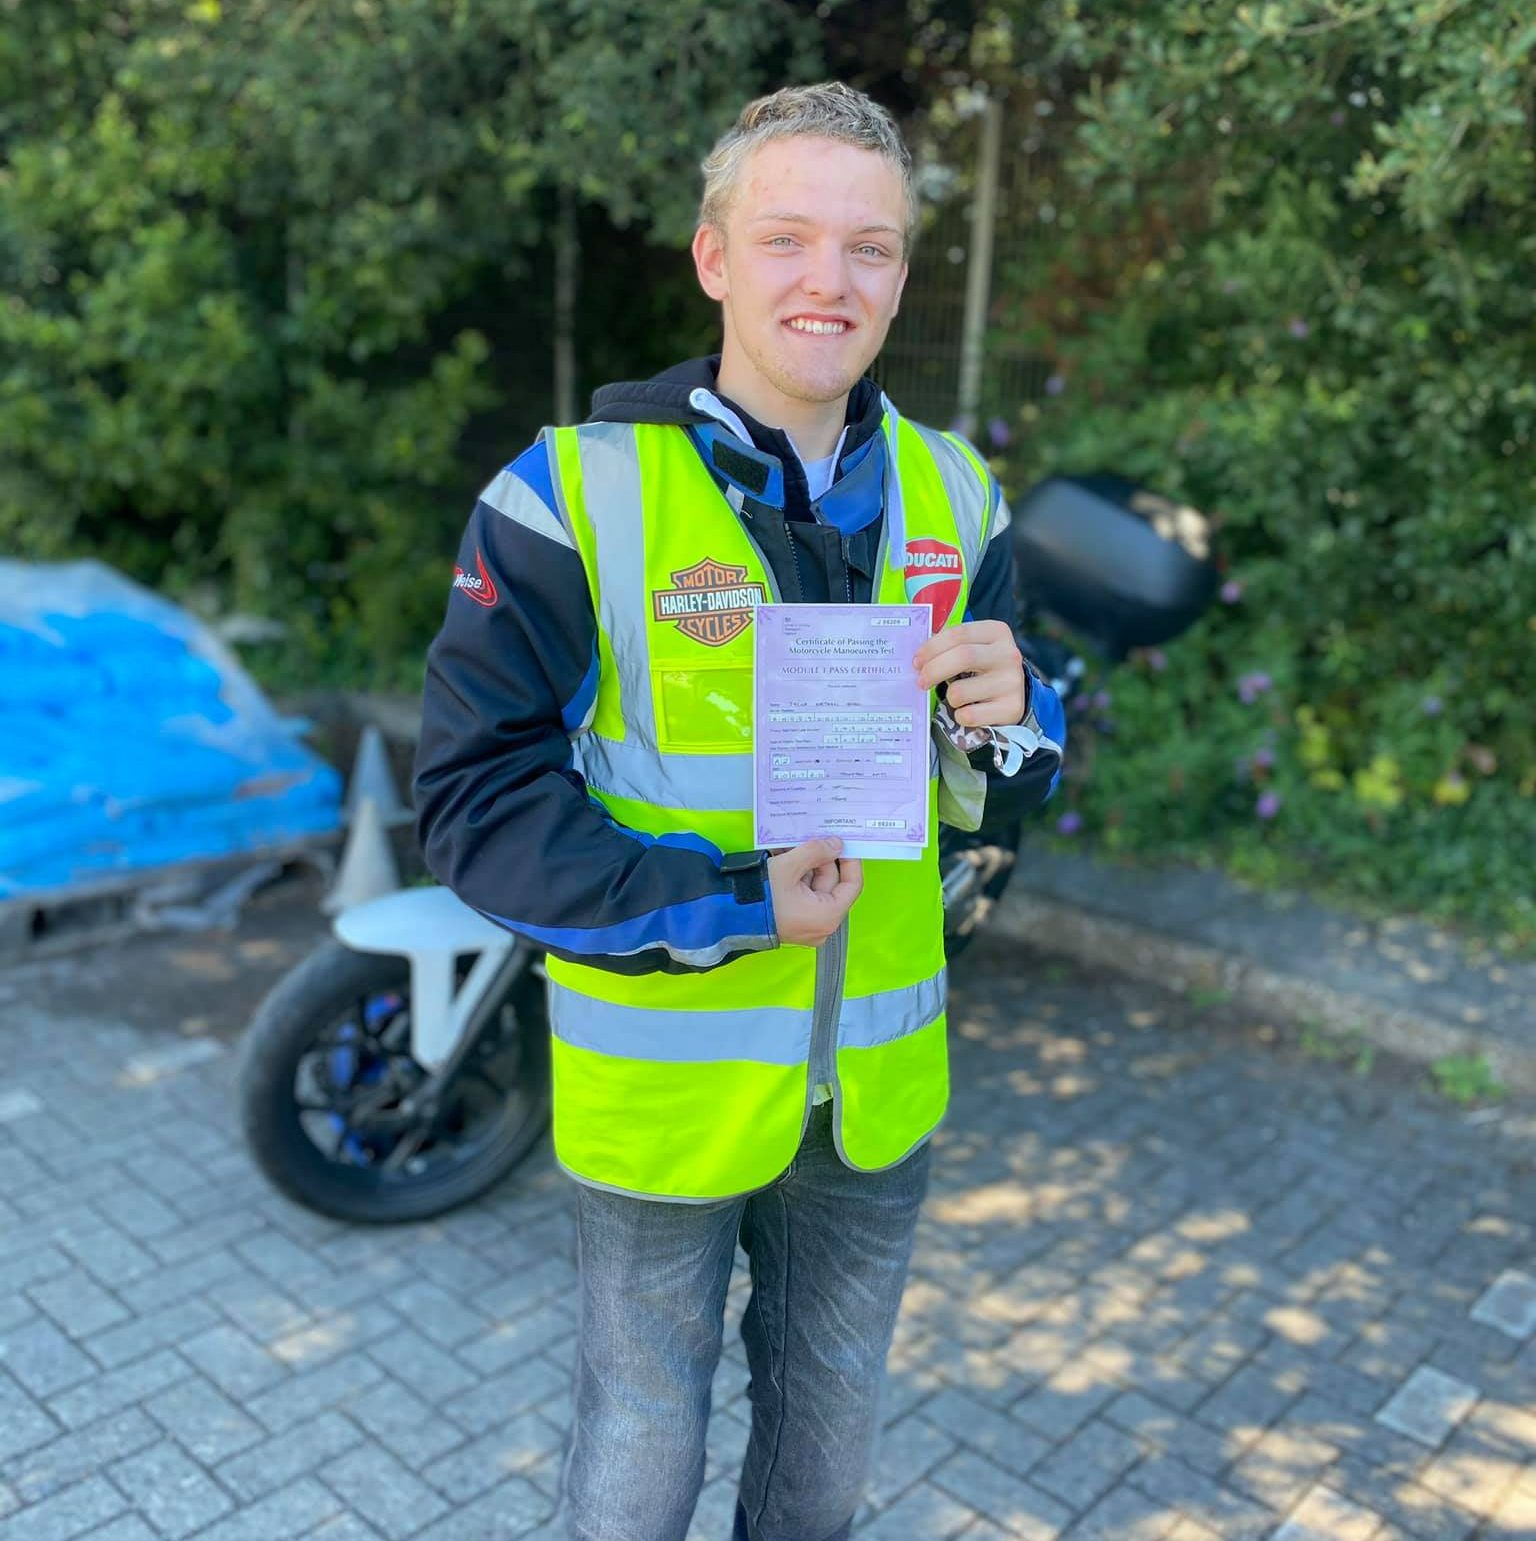 a2 motorcycle test pass bridgwater